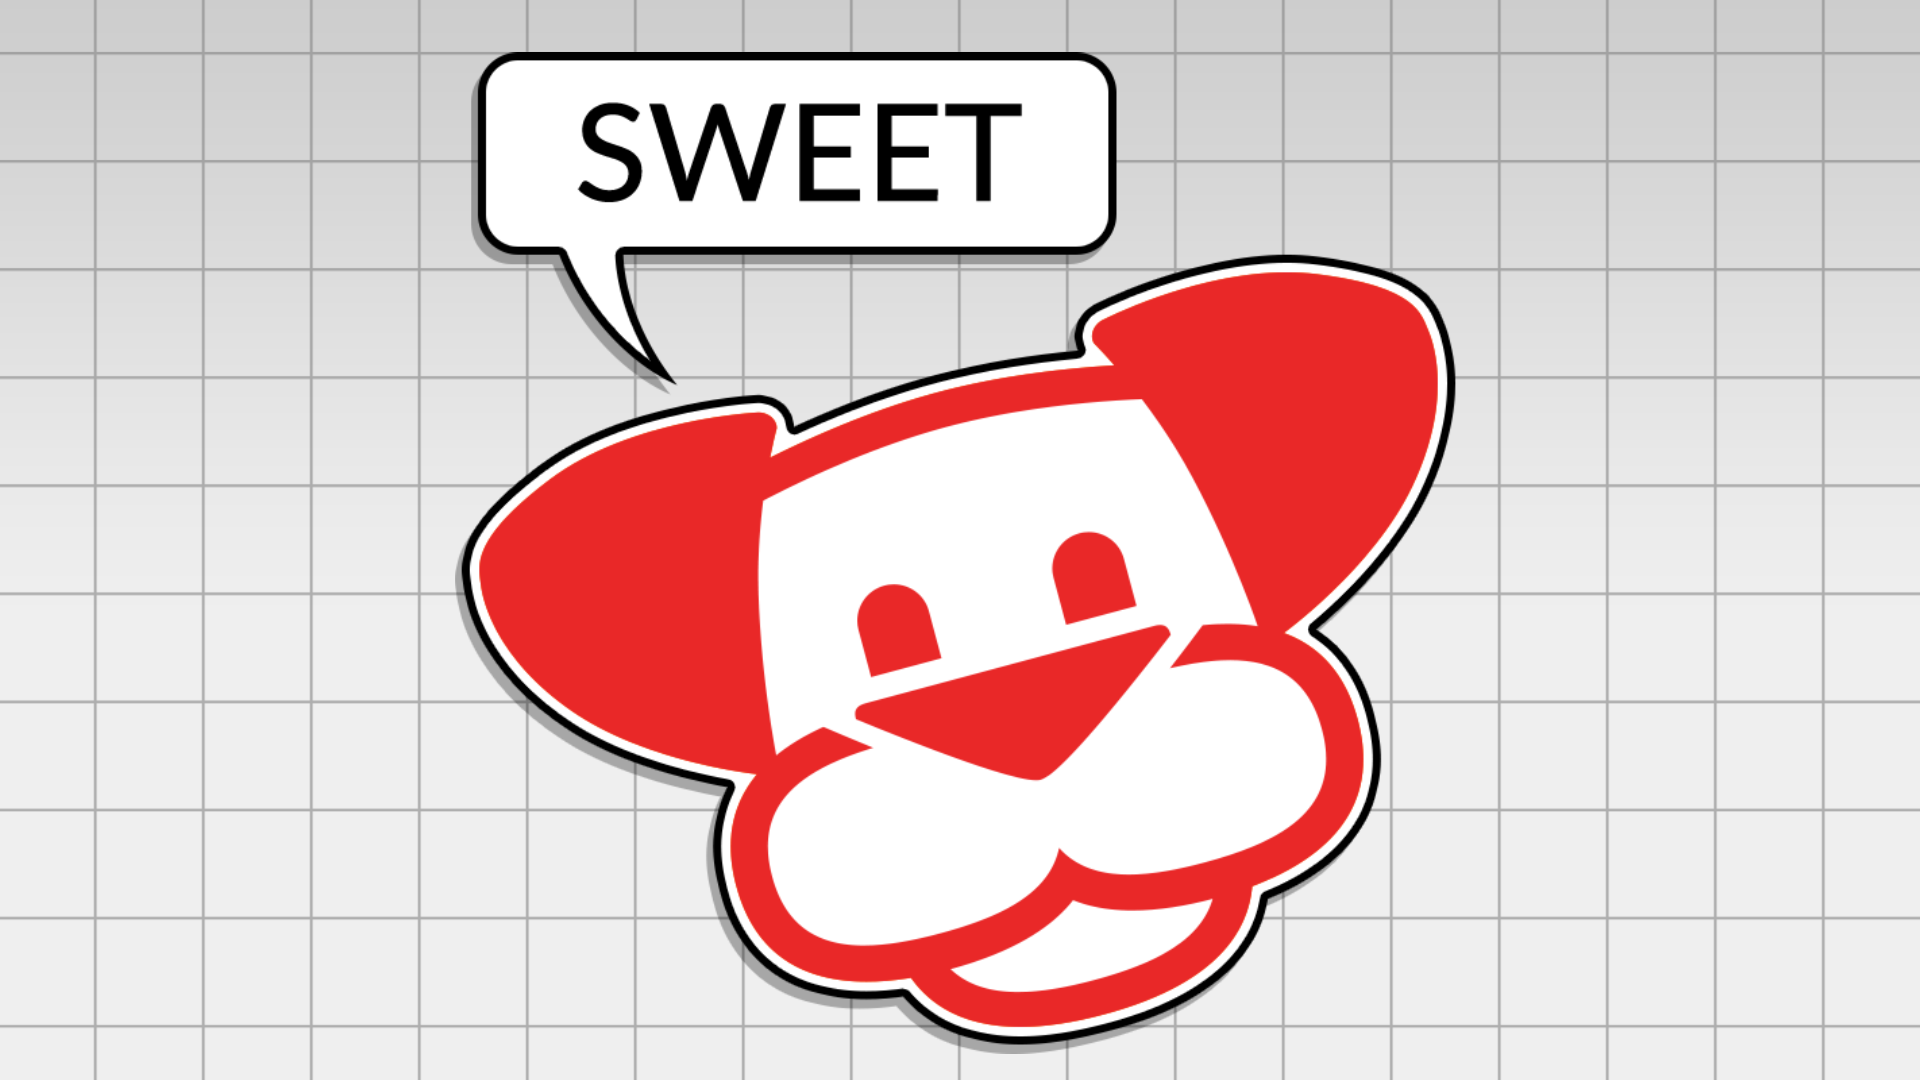 Icon for SWEET Spot